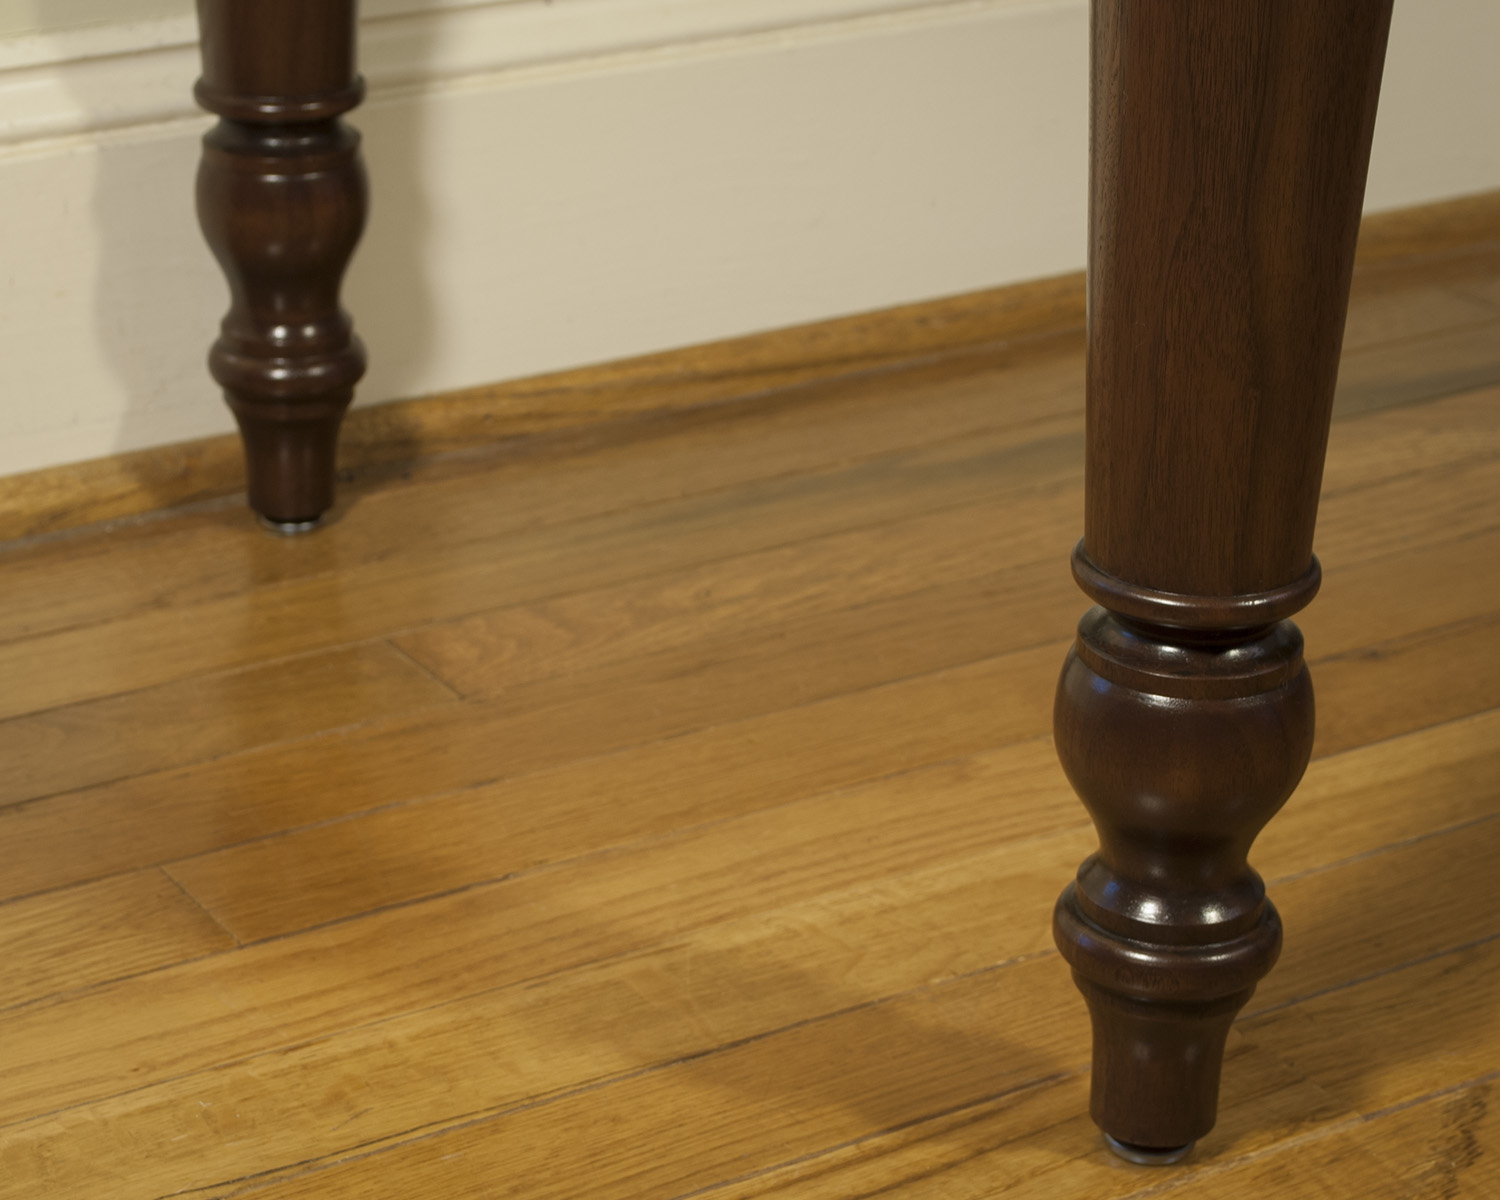 Traditional-Walnut-Turned-Leg-Table.jpg